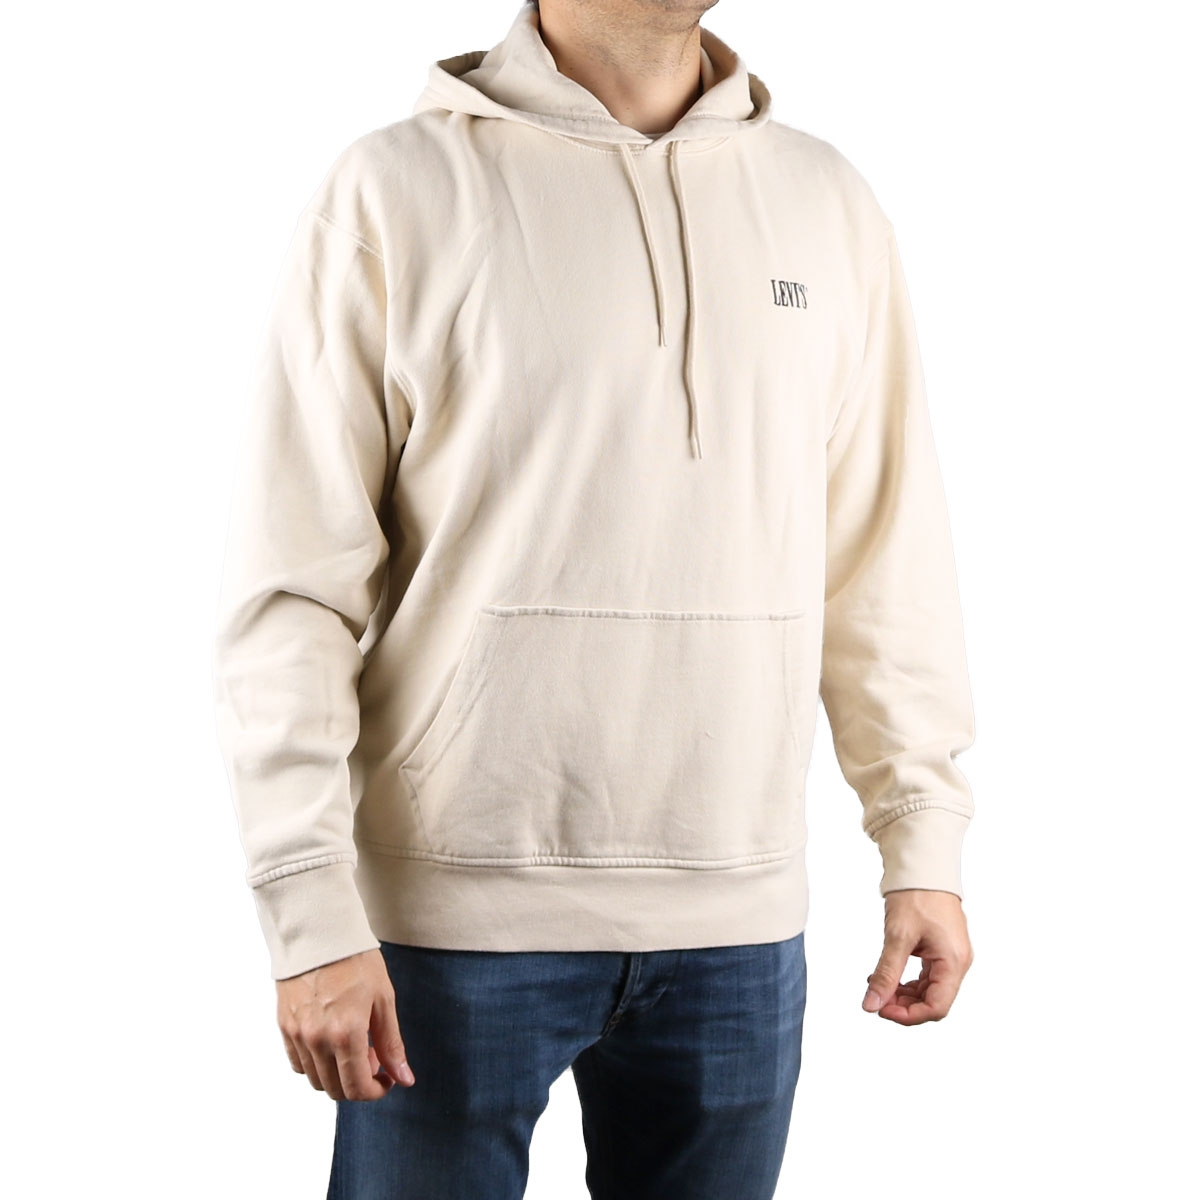 Levis Sudadera Authentic Hoodie NEUTRAL - FOG/ MINERAL Blanco Hombre